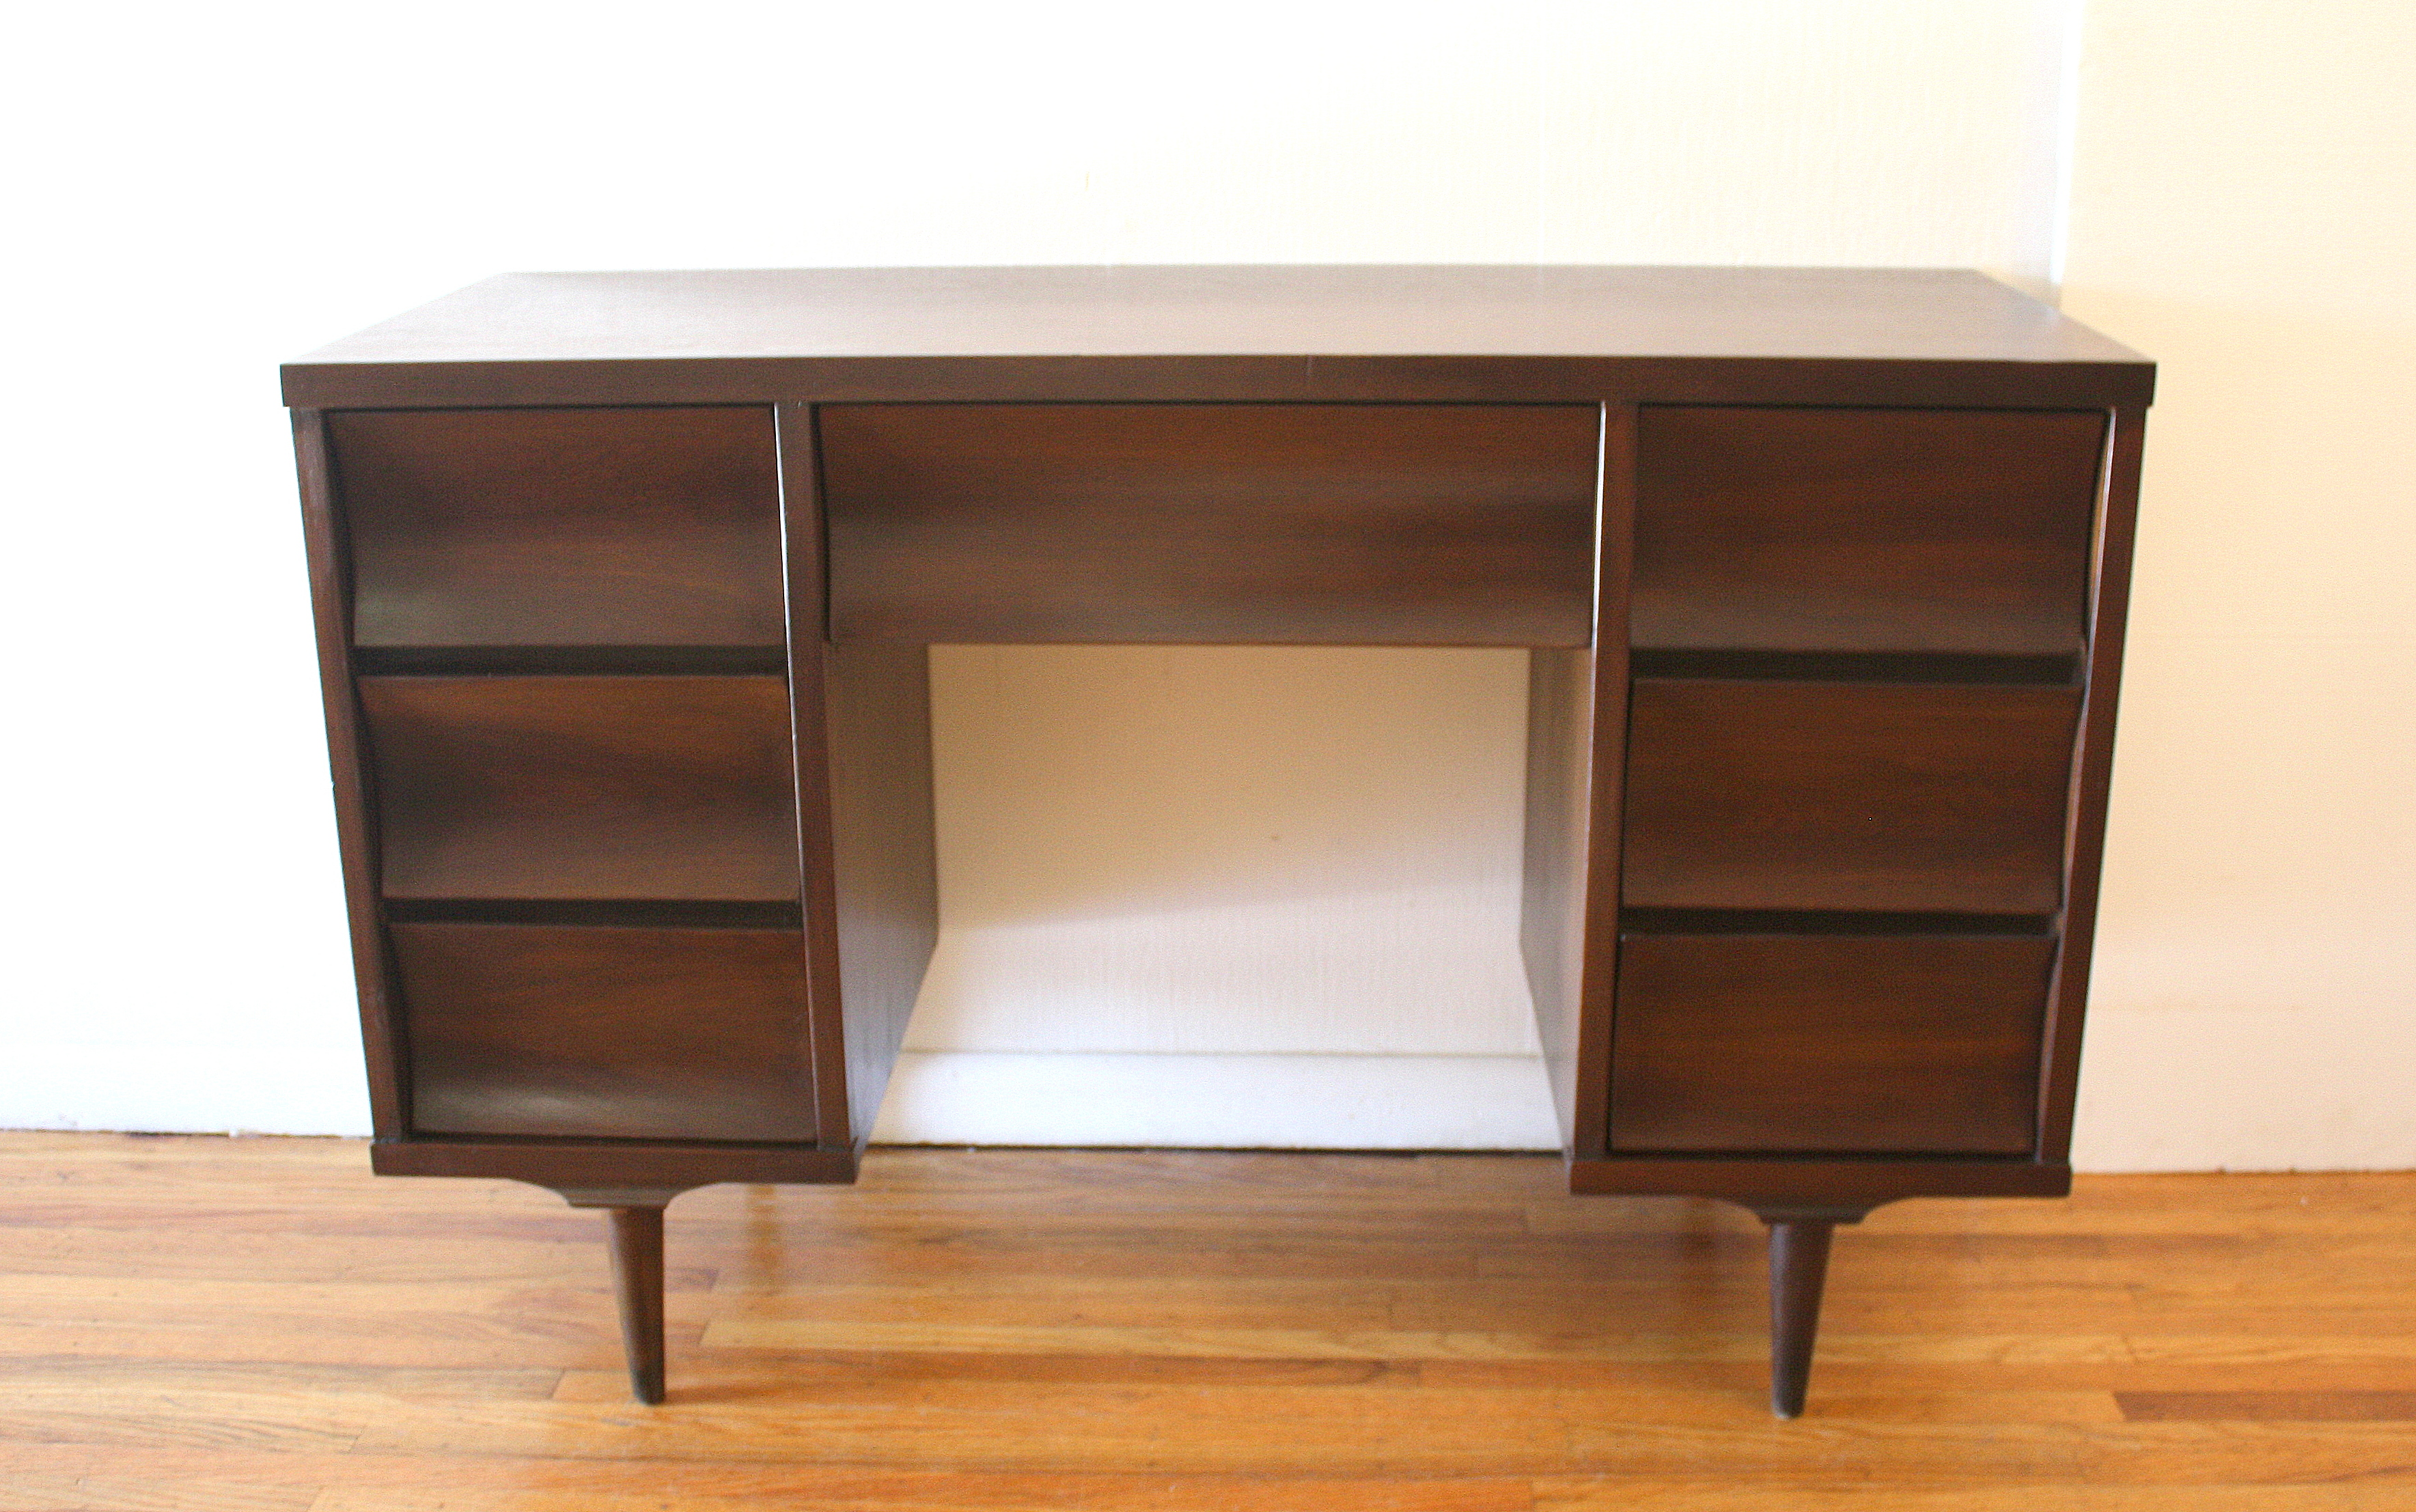 Johnson carper desk 1.JPG